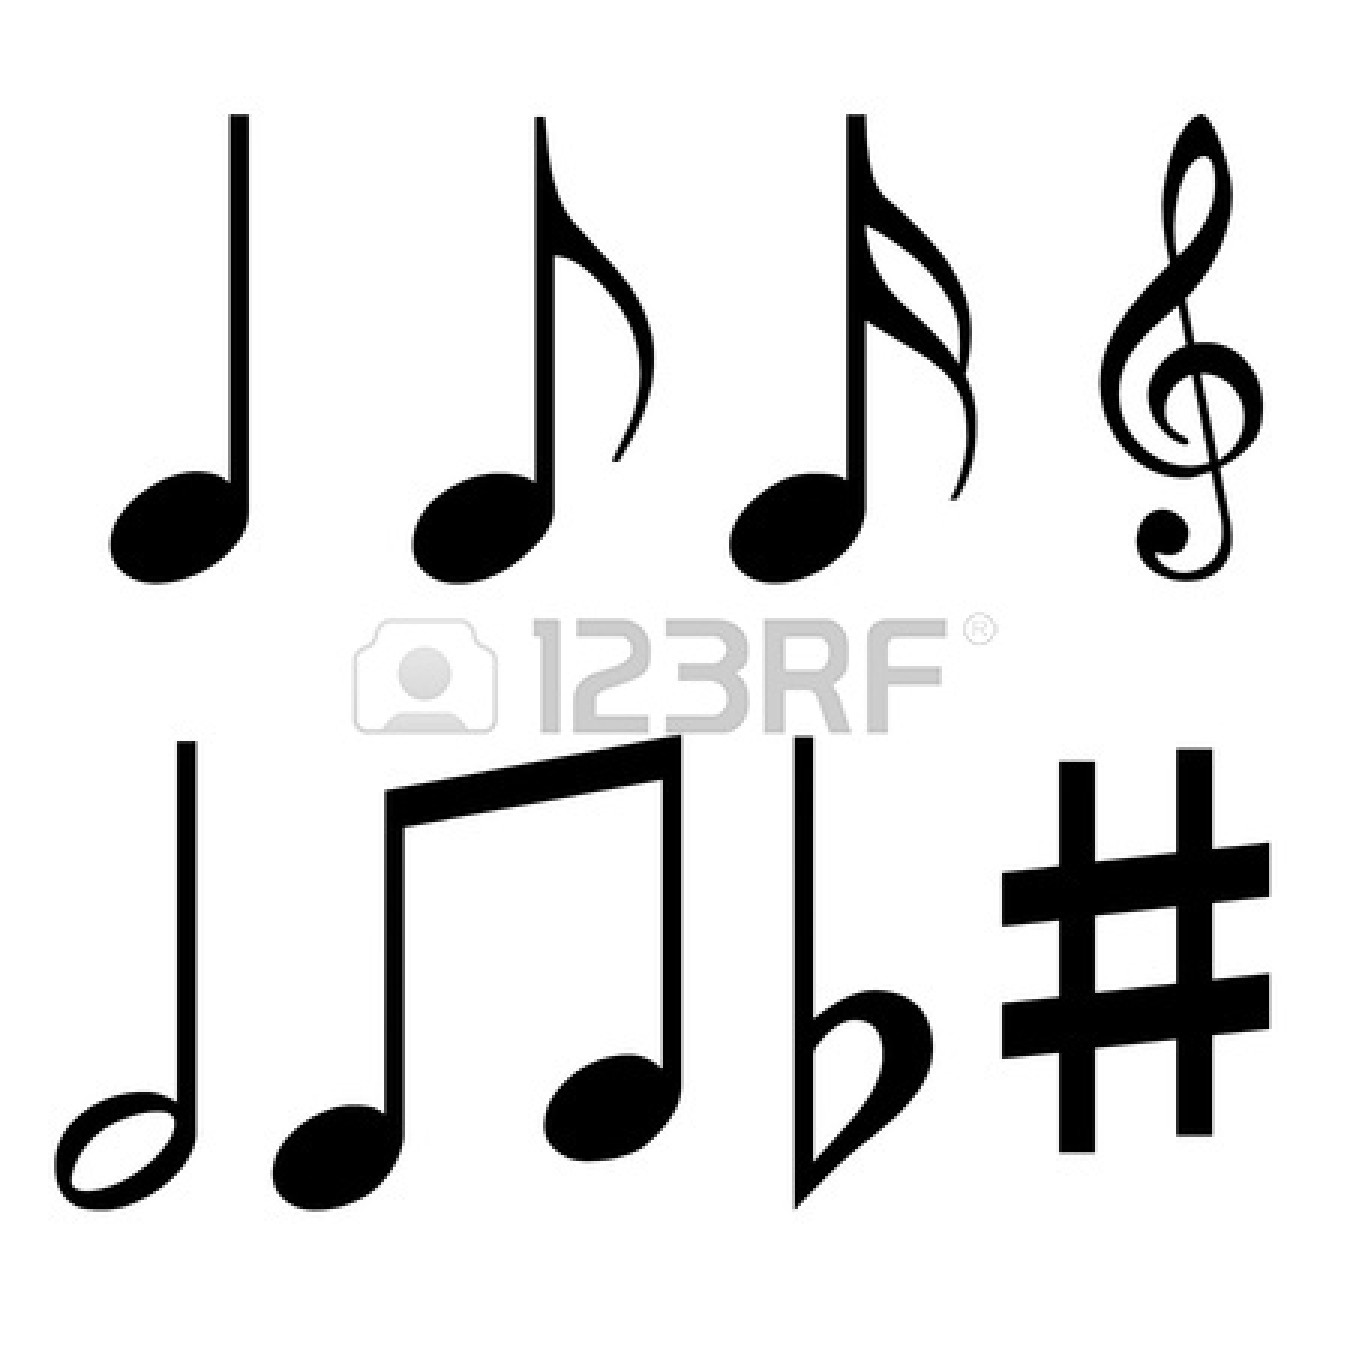 Images of music symbols free download best images of music 1350x1350 music notes for facebook clipart buycottarizona